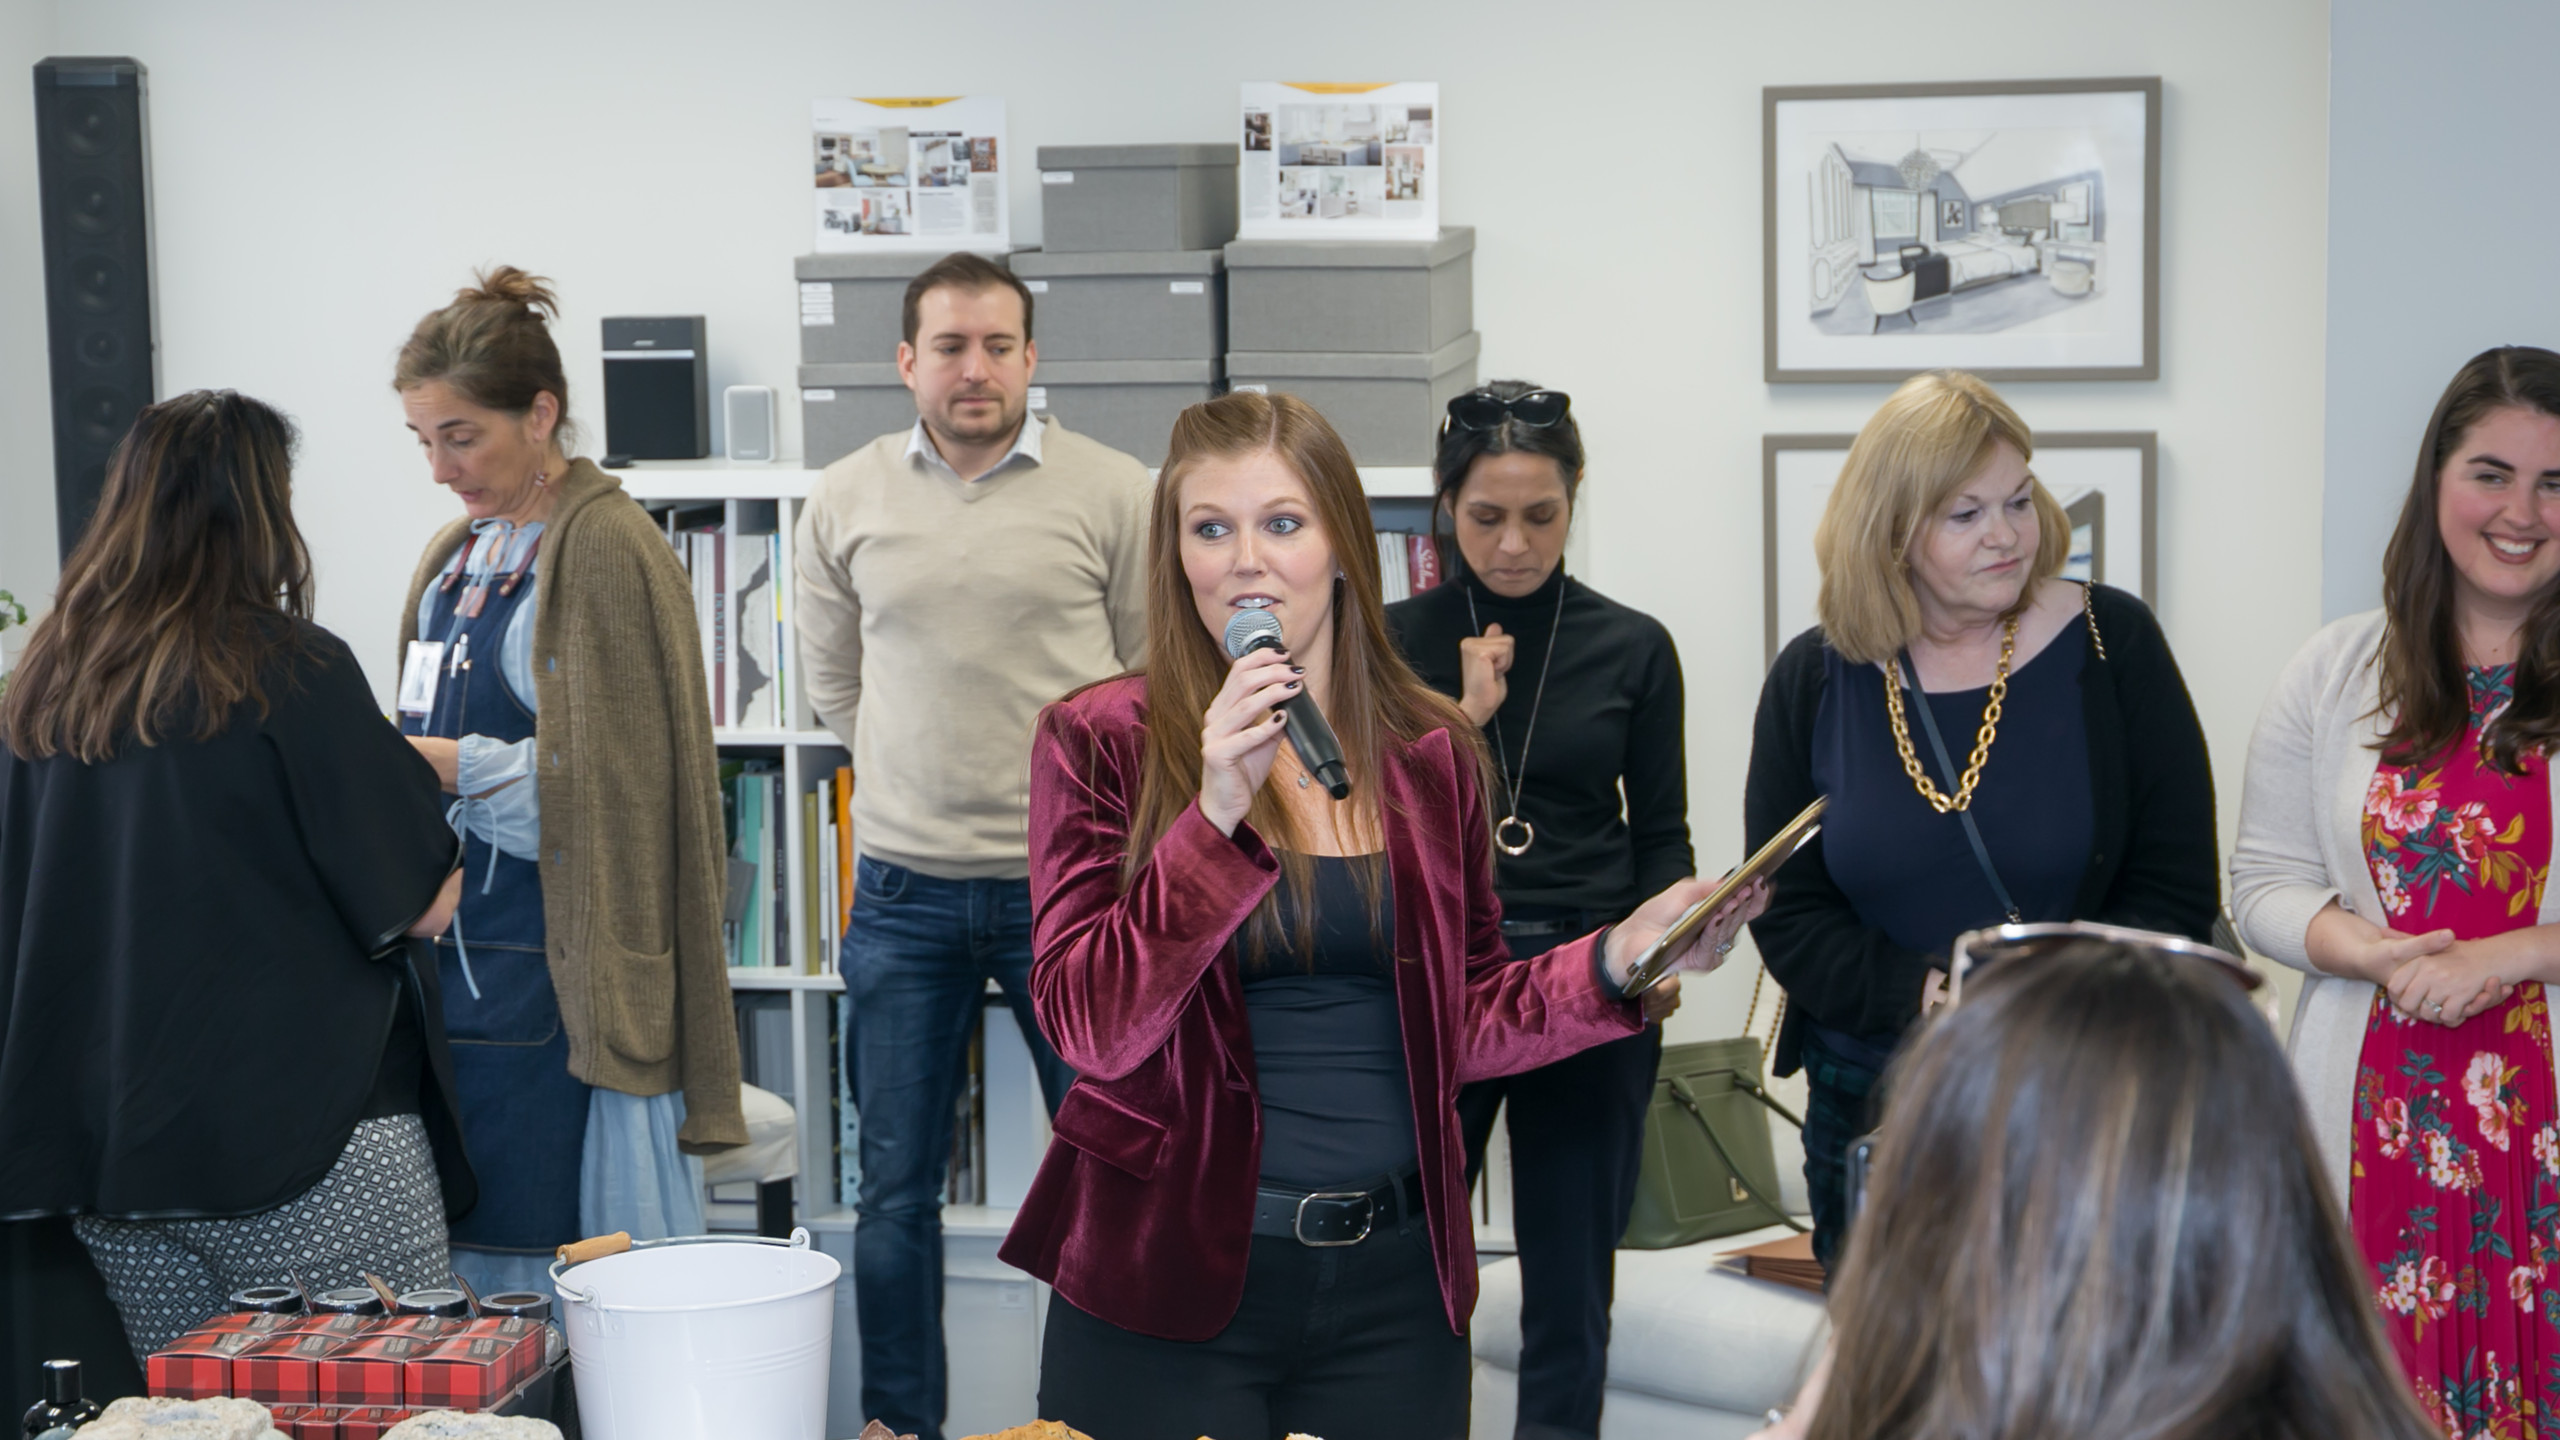 Laura Fox speaking at open house & pop-up shop event